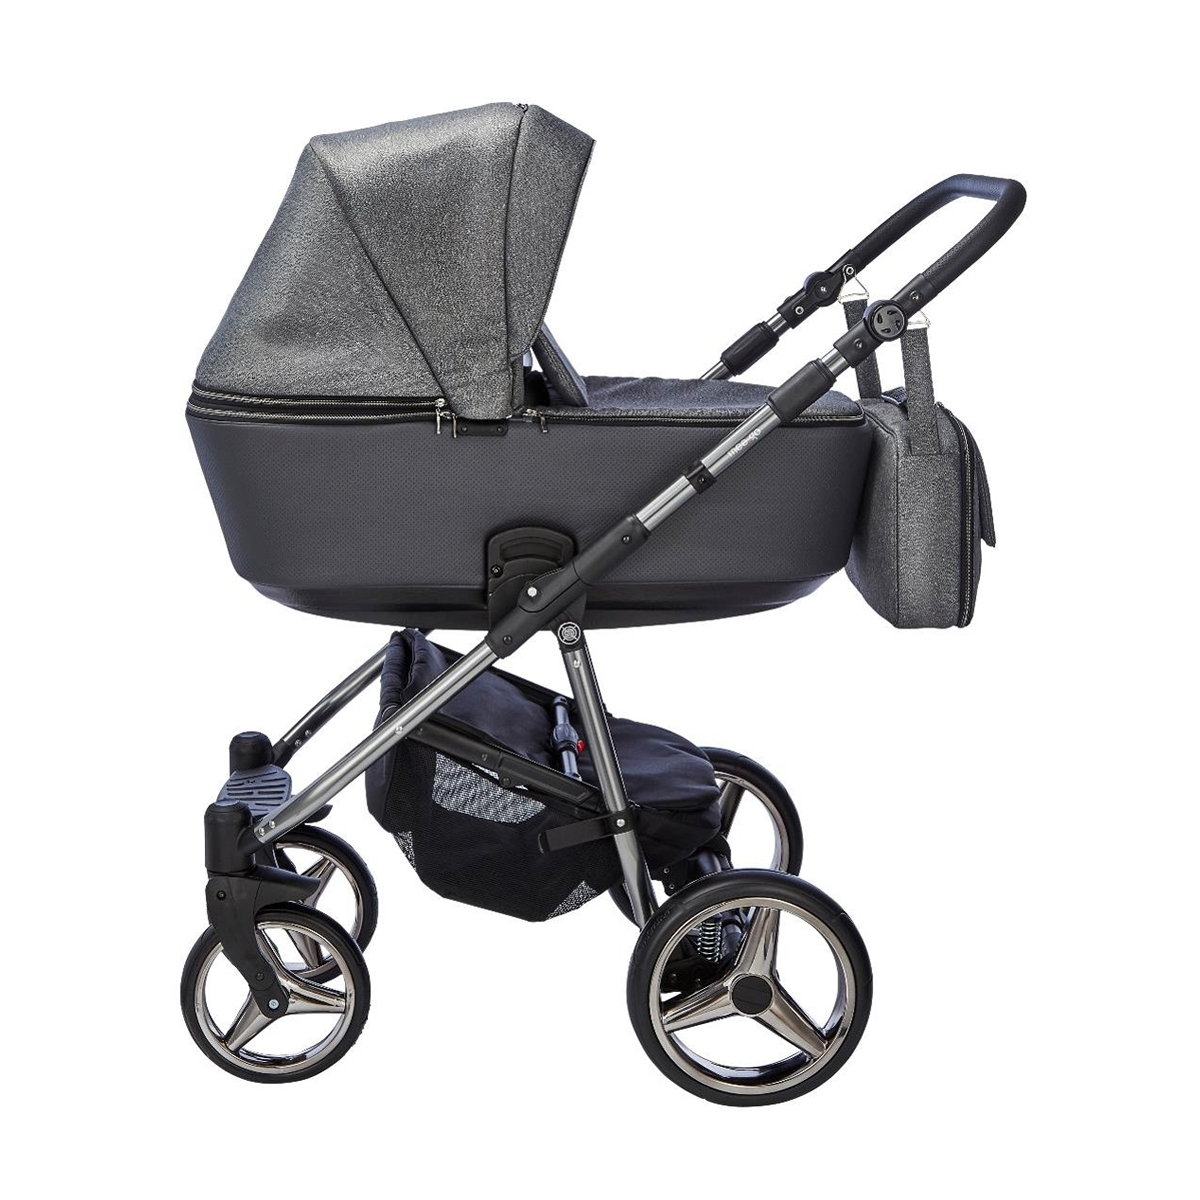 Mee-go Santino Special Edition Travel System-Cloud + Free Changing Bag Worth £80!